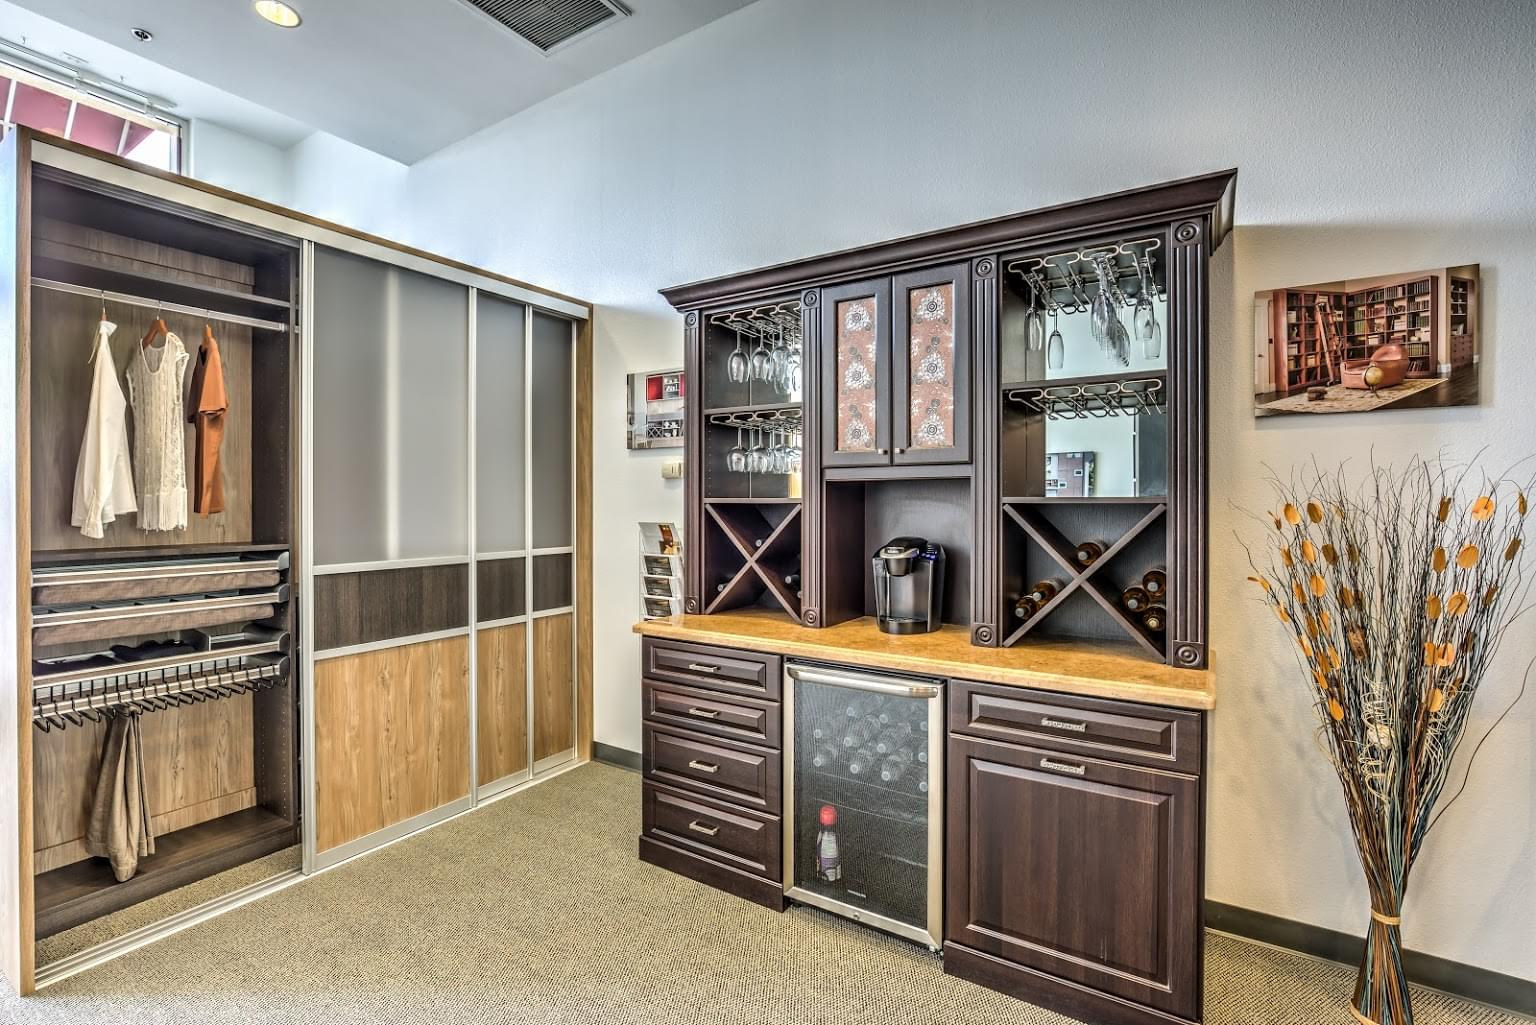 California closets las vegas - California Closets Grand Canyon Dr Las Vegas Nv Cabinet Maker